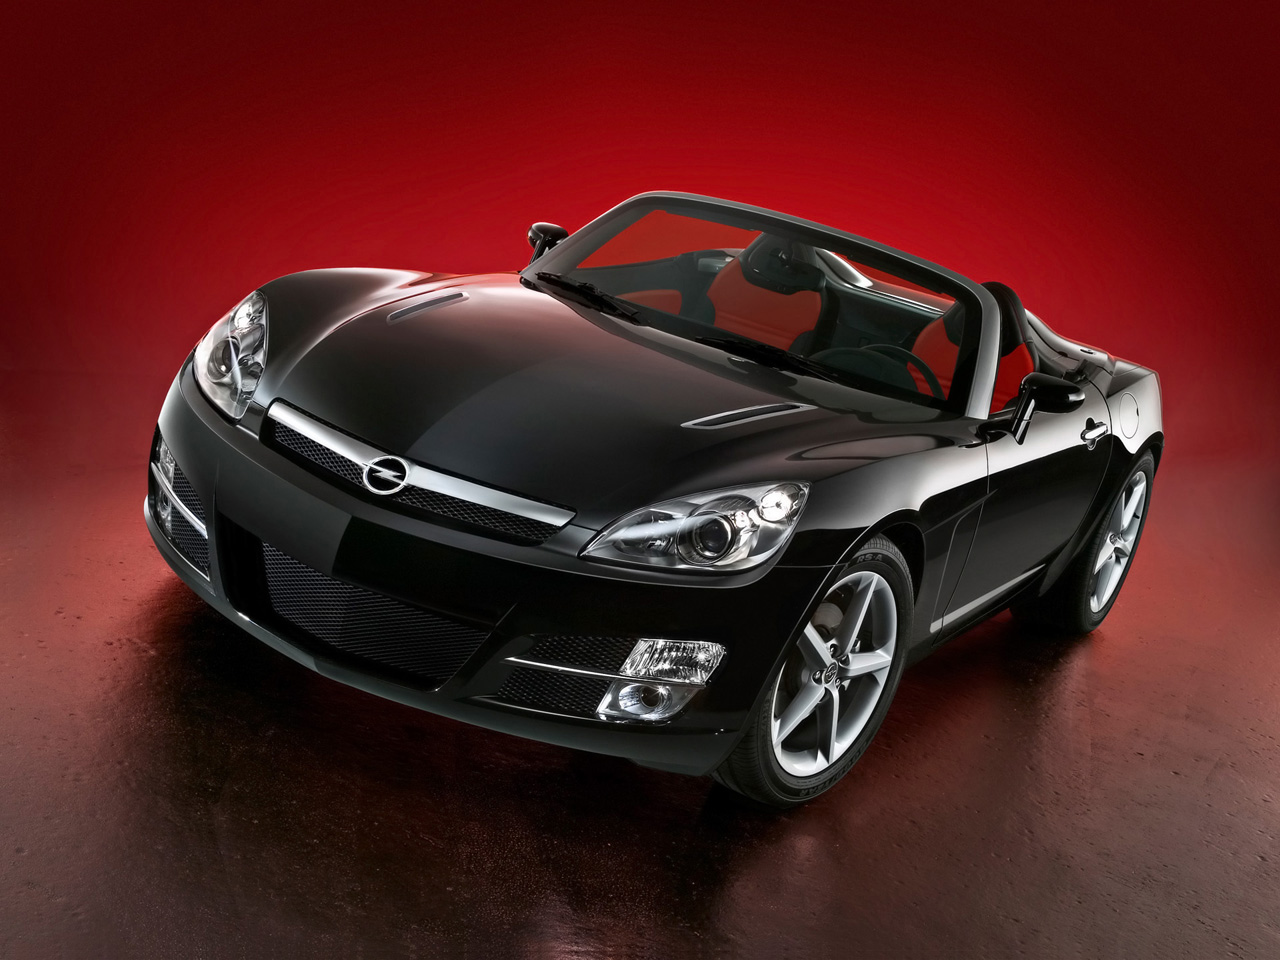 2007 opel gt pictures history value research news. Black Bedroom Furniture Sets. Home Design Ideas